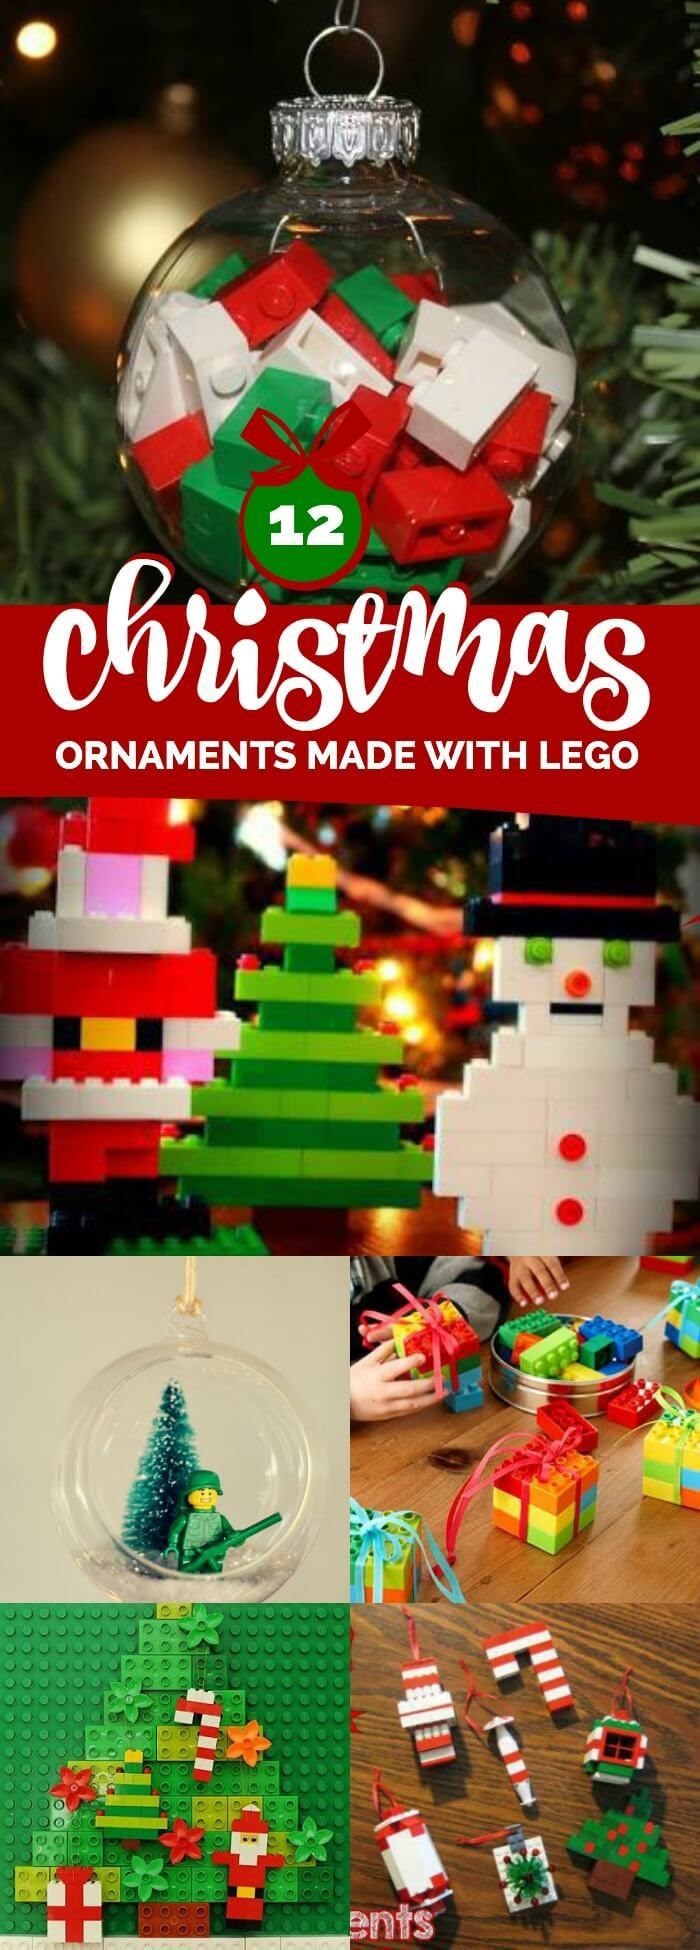 The missing christmas decorations uk hd - 12 Christmas Ornaments Made With Lego